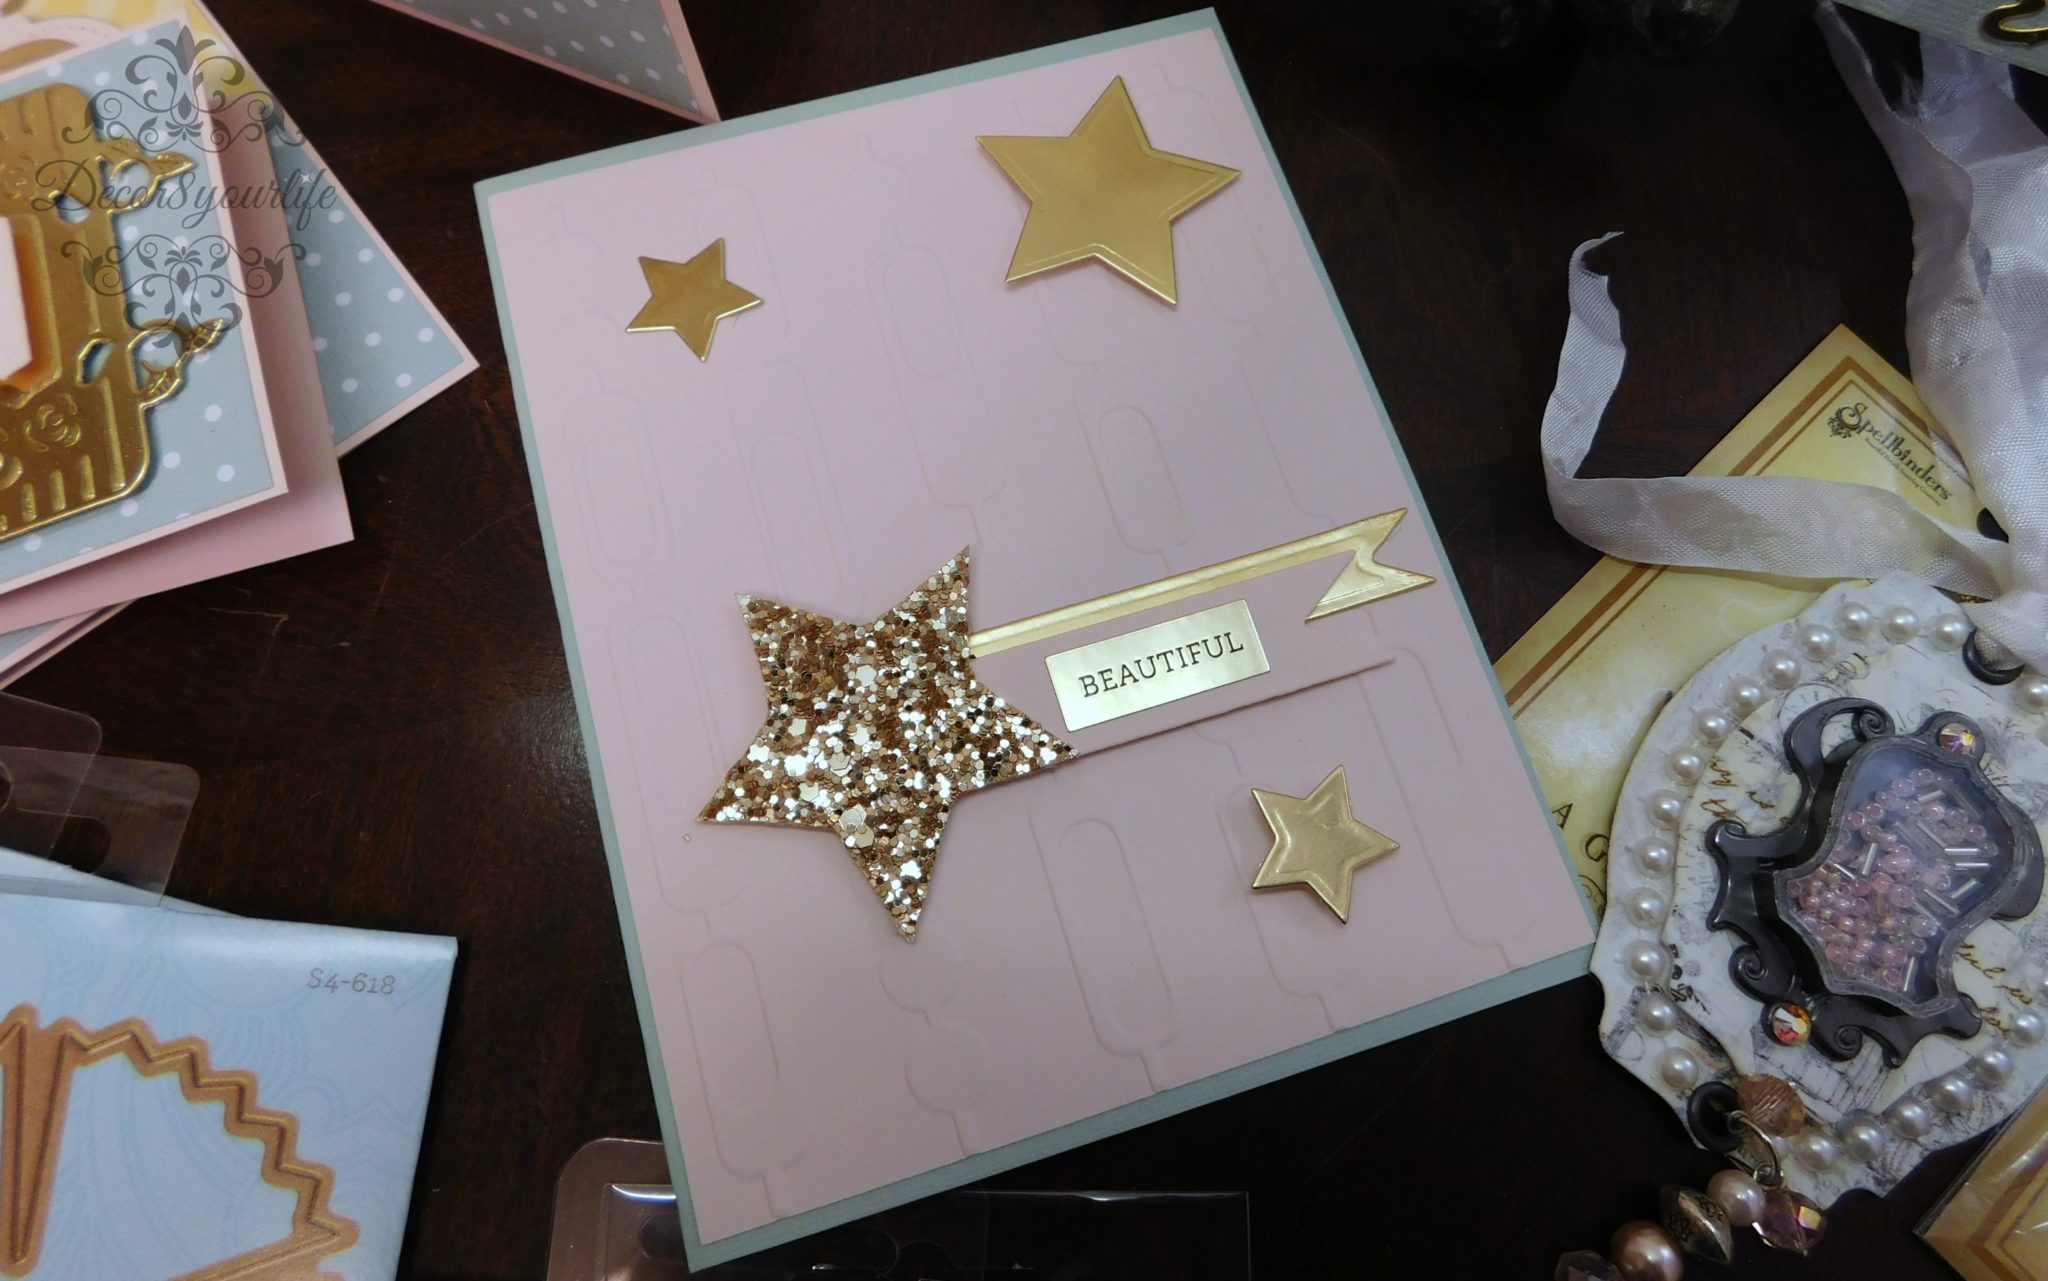 Spellbinders embossing folder handmade card